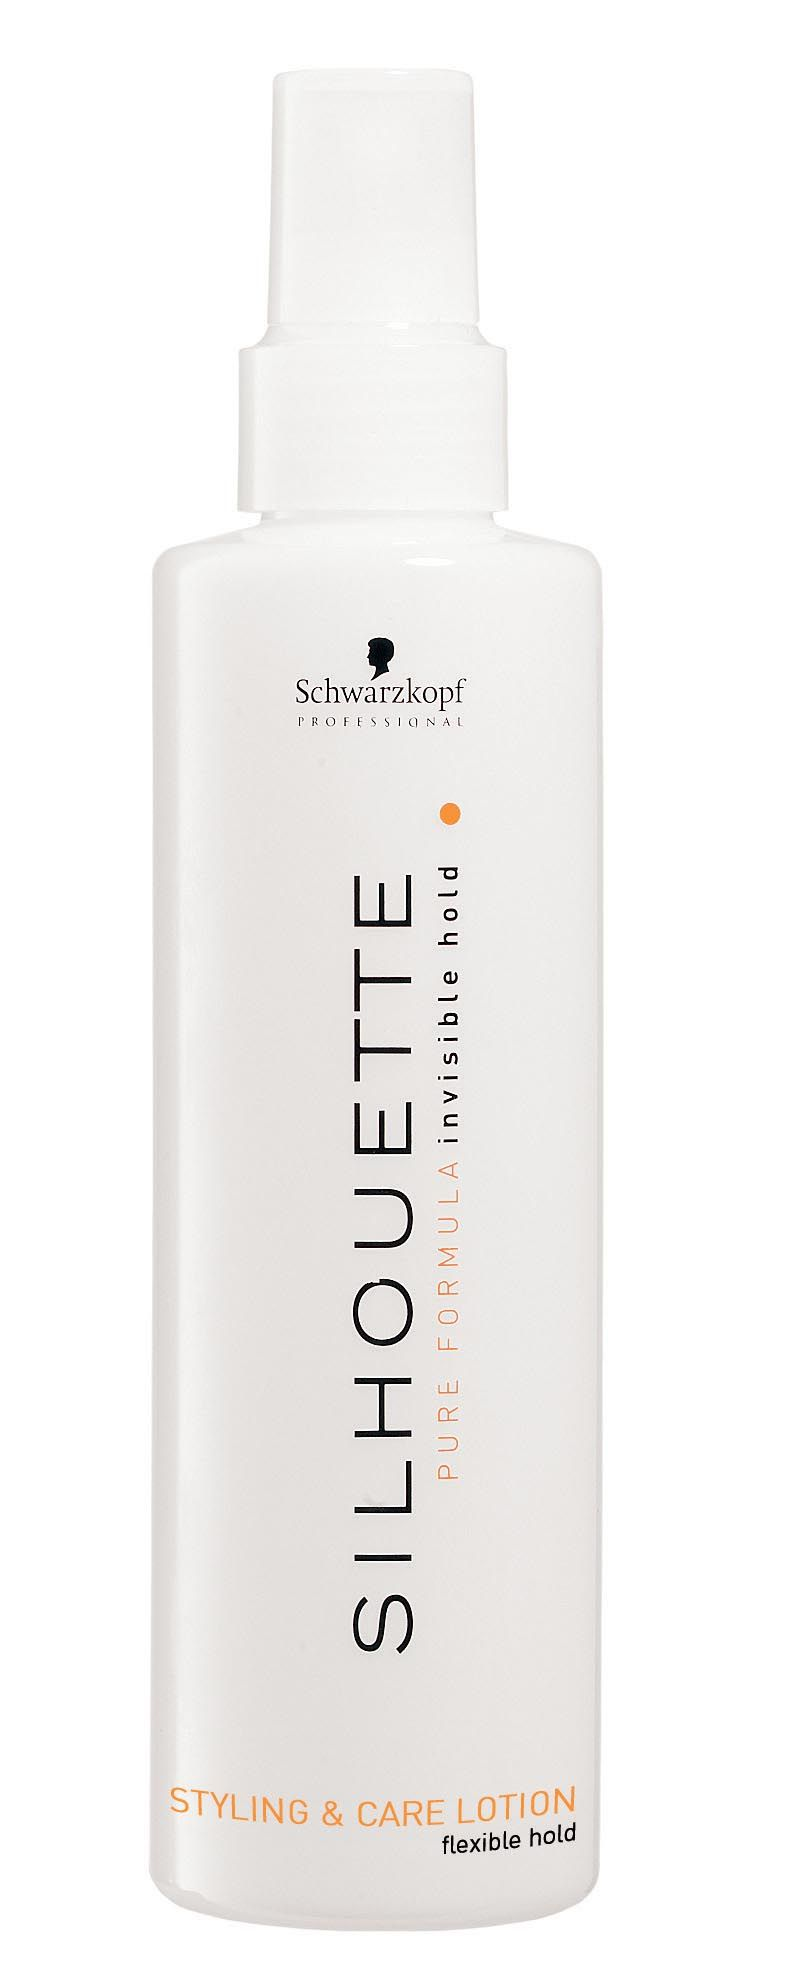 Schwarzkopf SILHOUETTE FLEXIBLE HOLD Styling & Care Lotion 200 ml